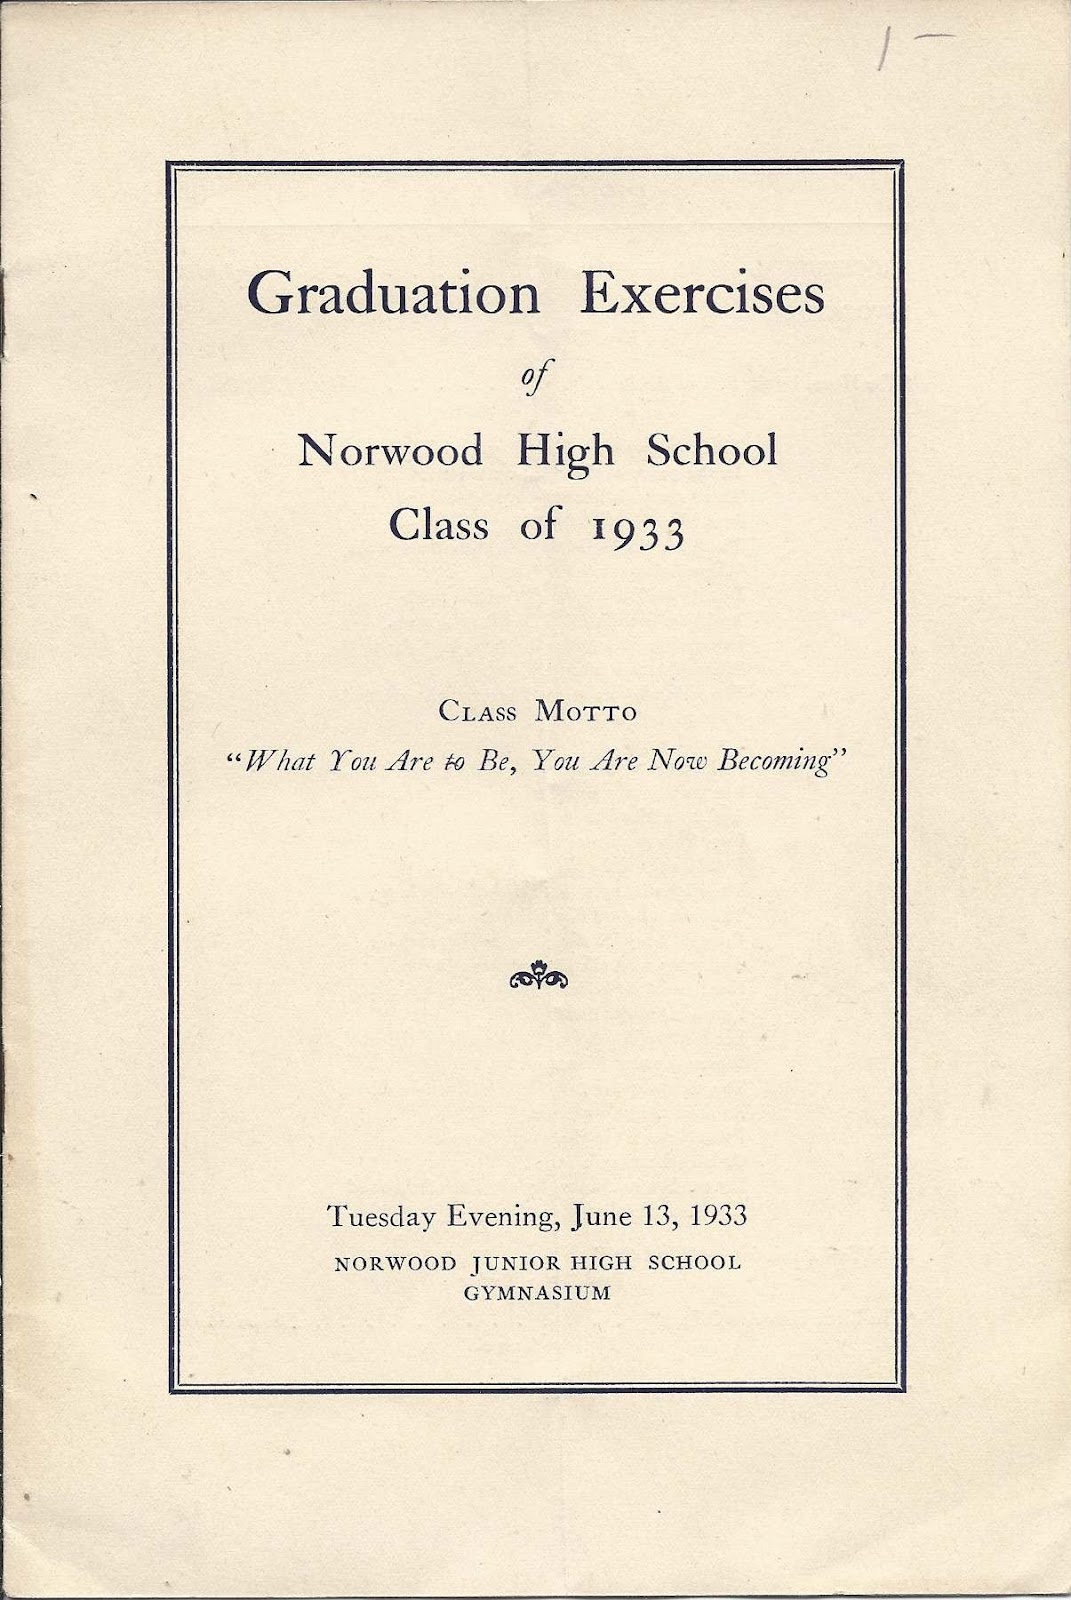 Heirlooms Reunited: 1933 Graduation Program of Norwood High School ...